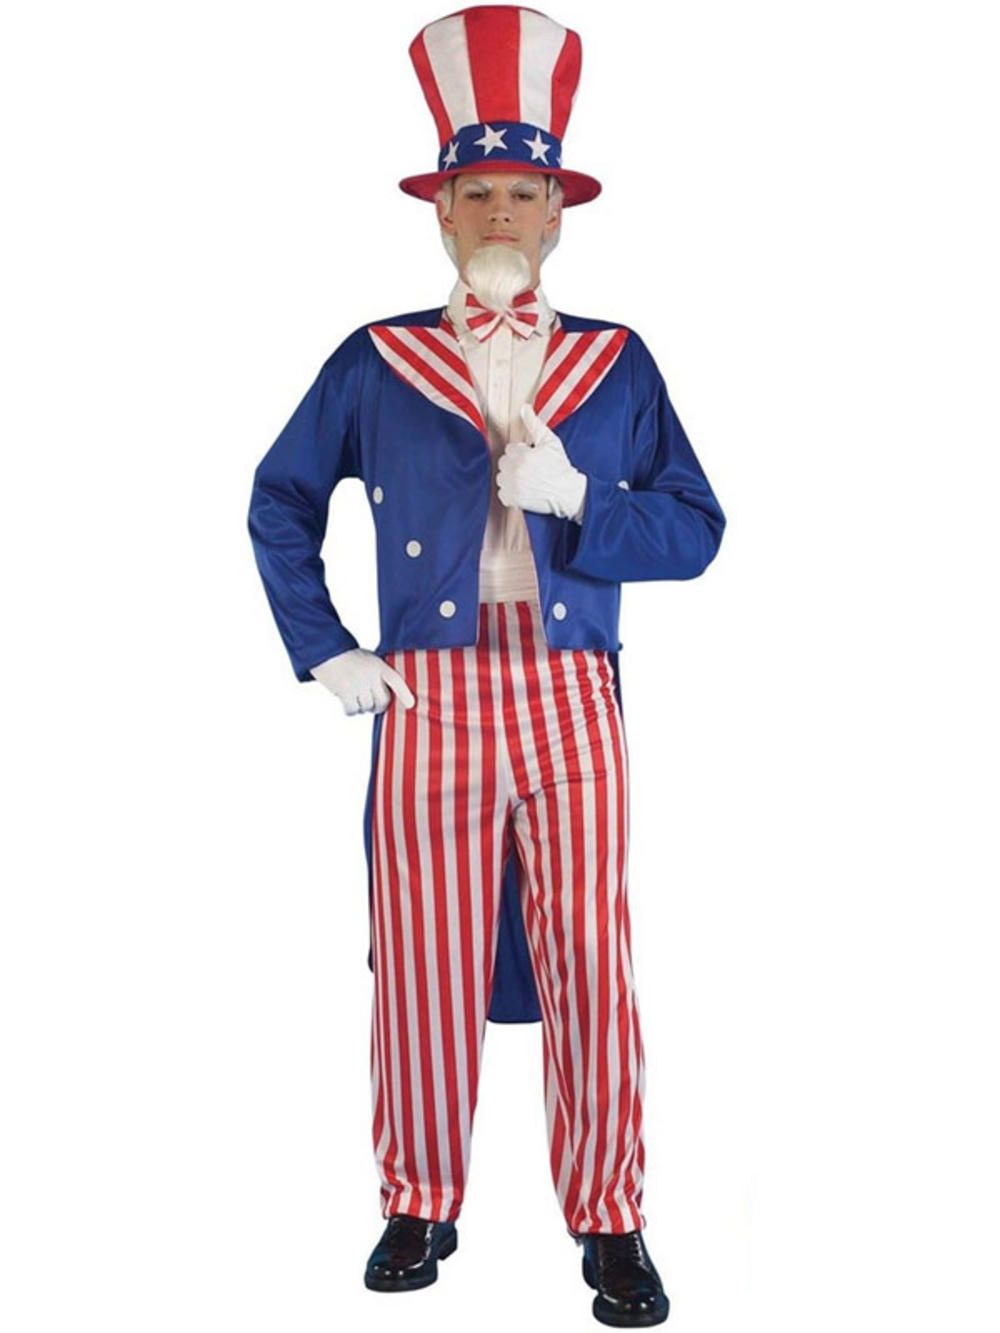 uncle sam 4th july american stars & stripes men fancy dress costume